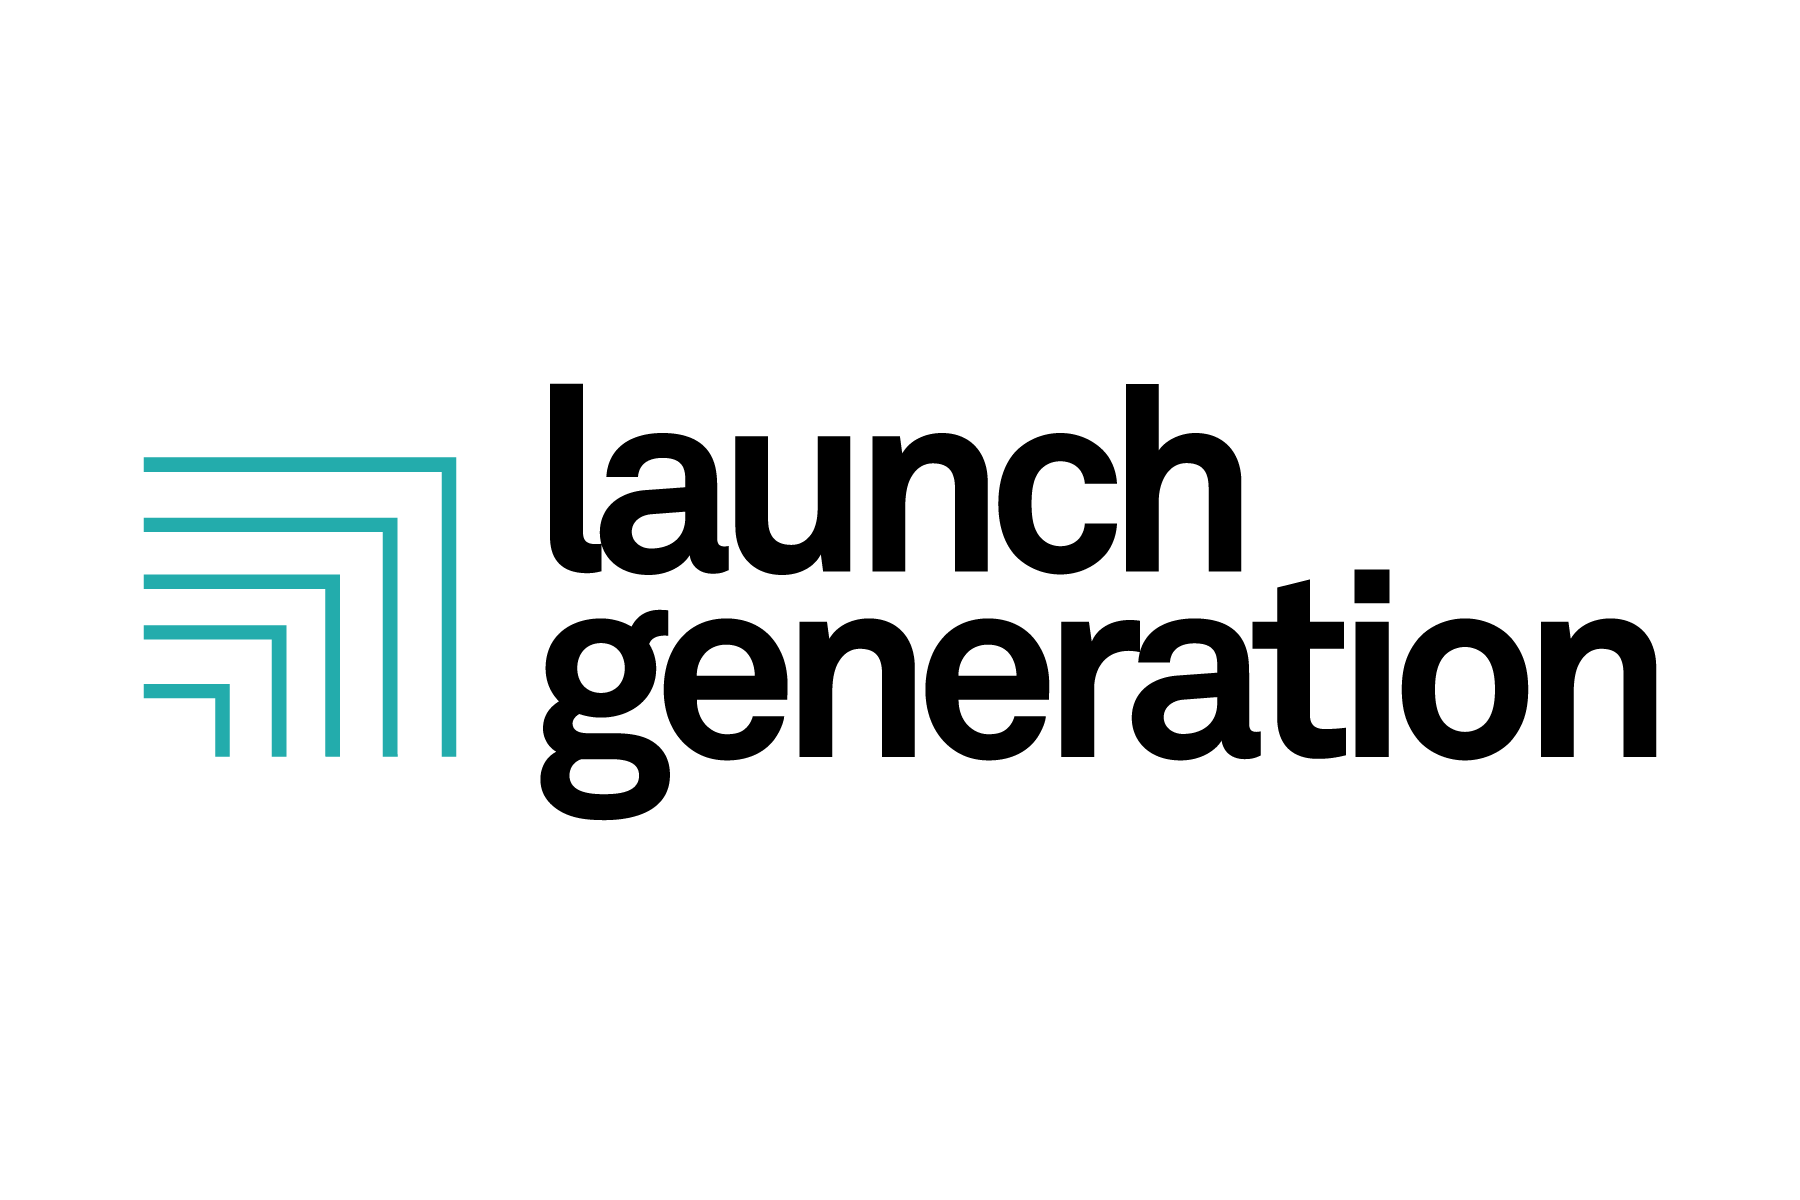 Summer Program Launch Generation - Summer Programs on Financial Literacy, Leadership & Entrepreneurship